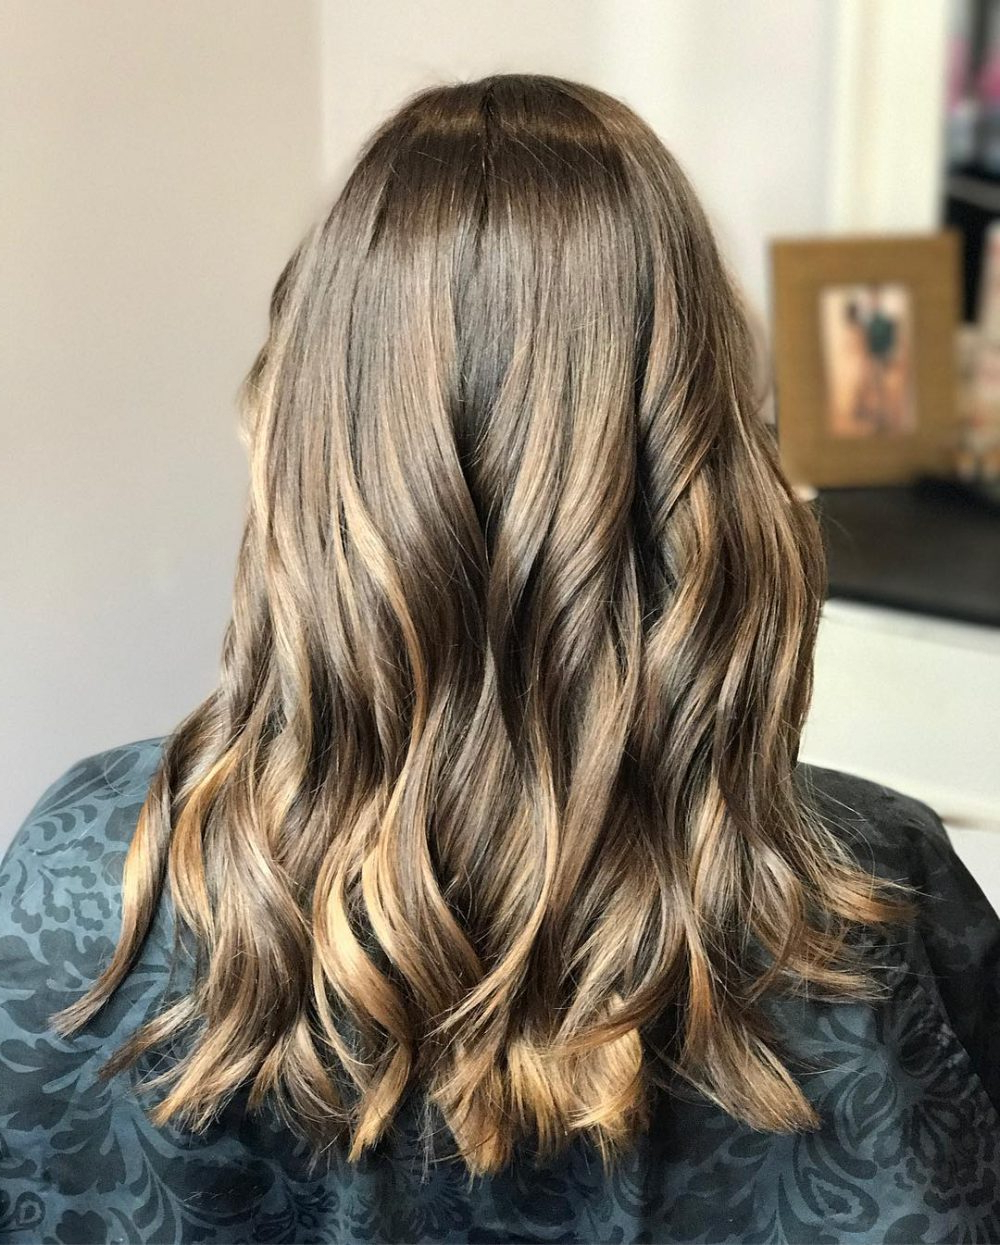 34 Sweetest Caramel Highlights On Light To Dark Brown Hair In Most Current Long Waves Hairstyles With Subtle Highlights (View 7 of 20)